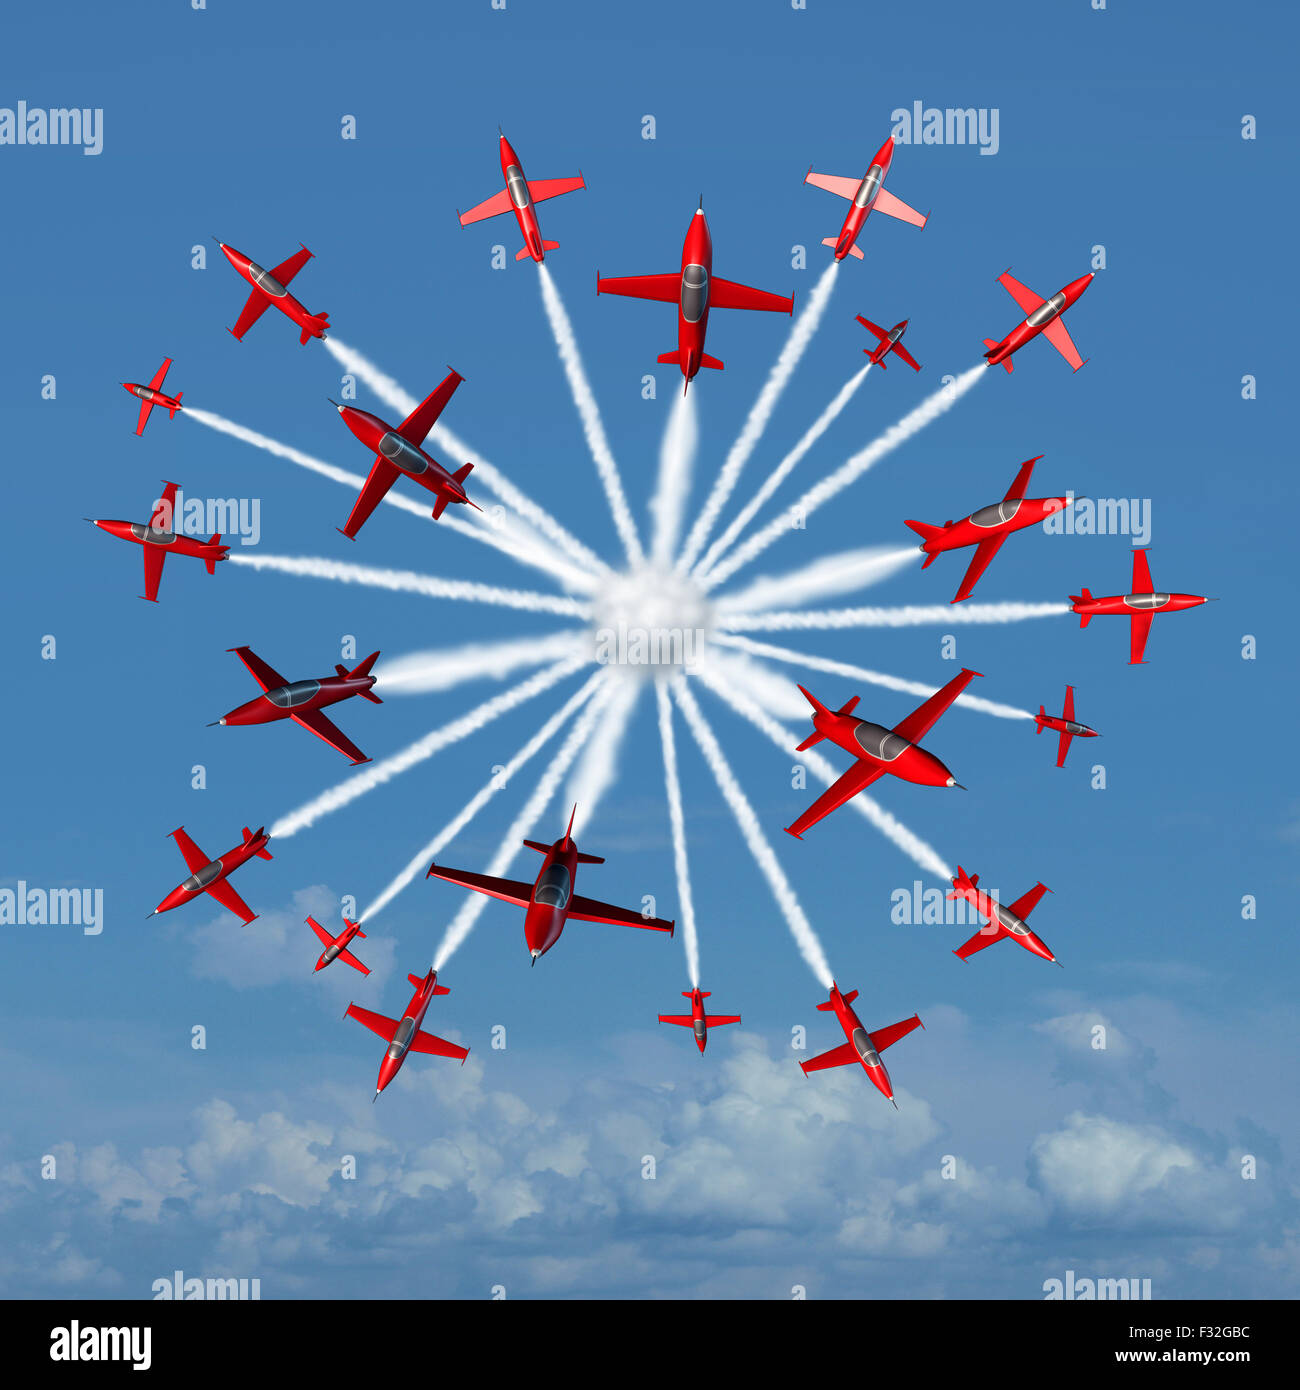 Global marketing concept as a coordinated group of acrobatic jet airplanes radiating out from a center point towards - Stock Image